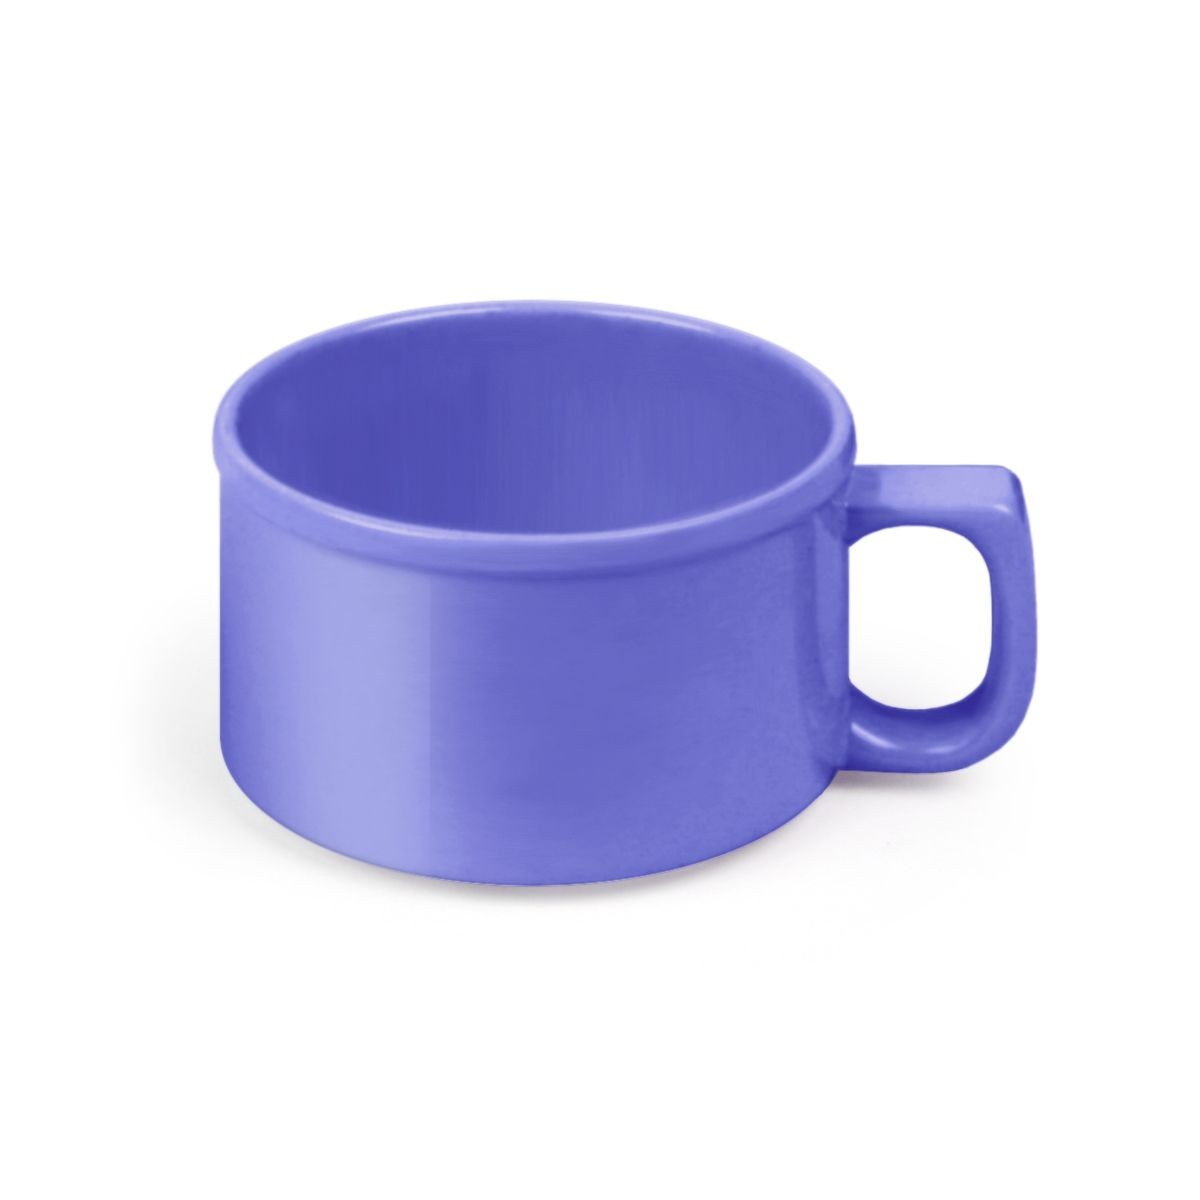 Thunder Group CR9016BU Purple Melamine Soup Mug 10 oz. - 1 doz